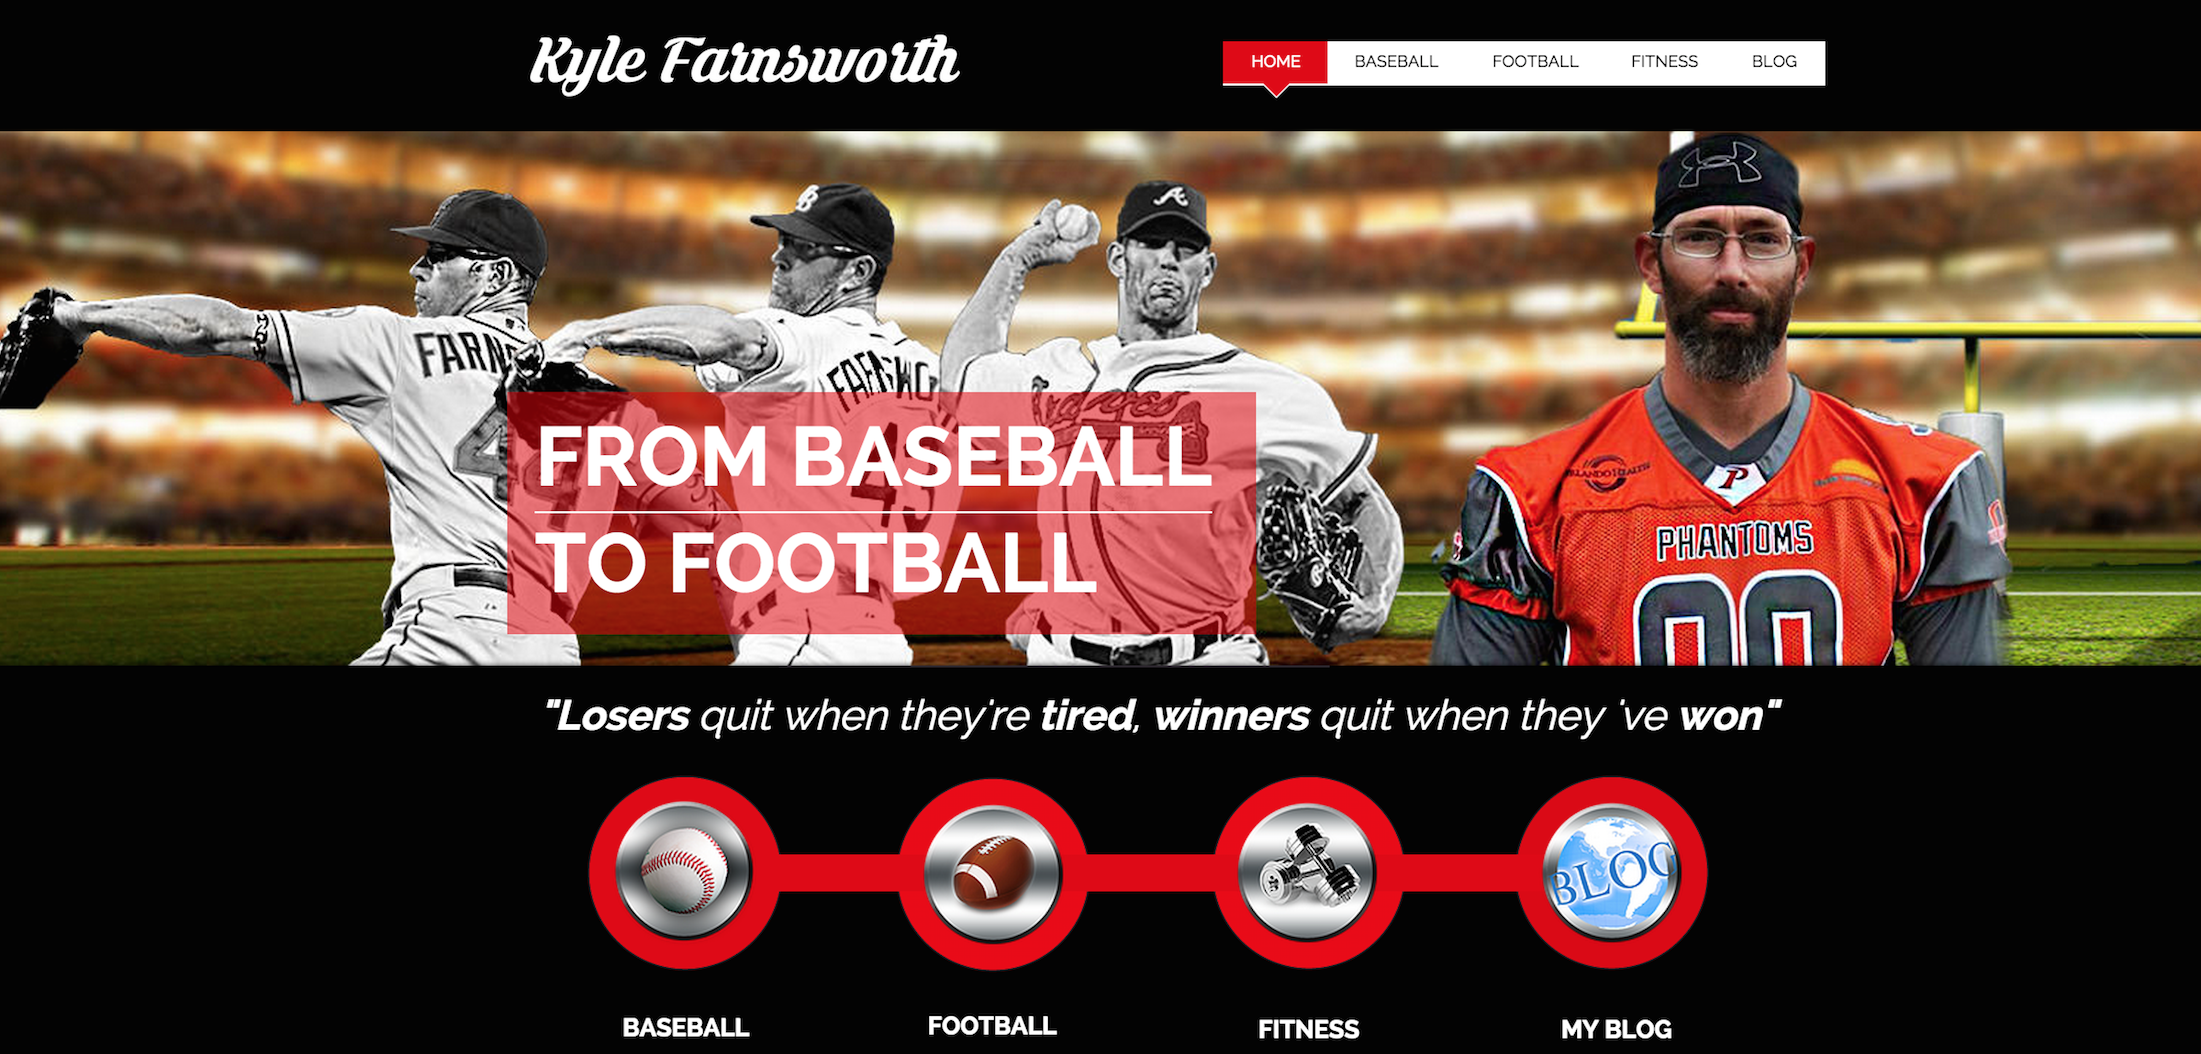 Kyle Farnsworth Homepage Design